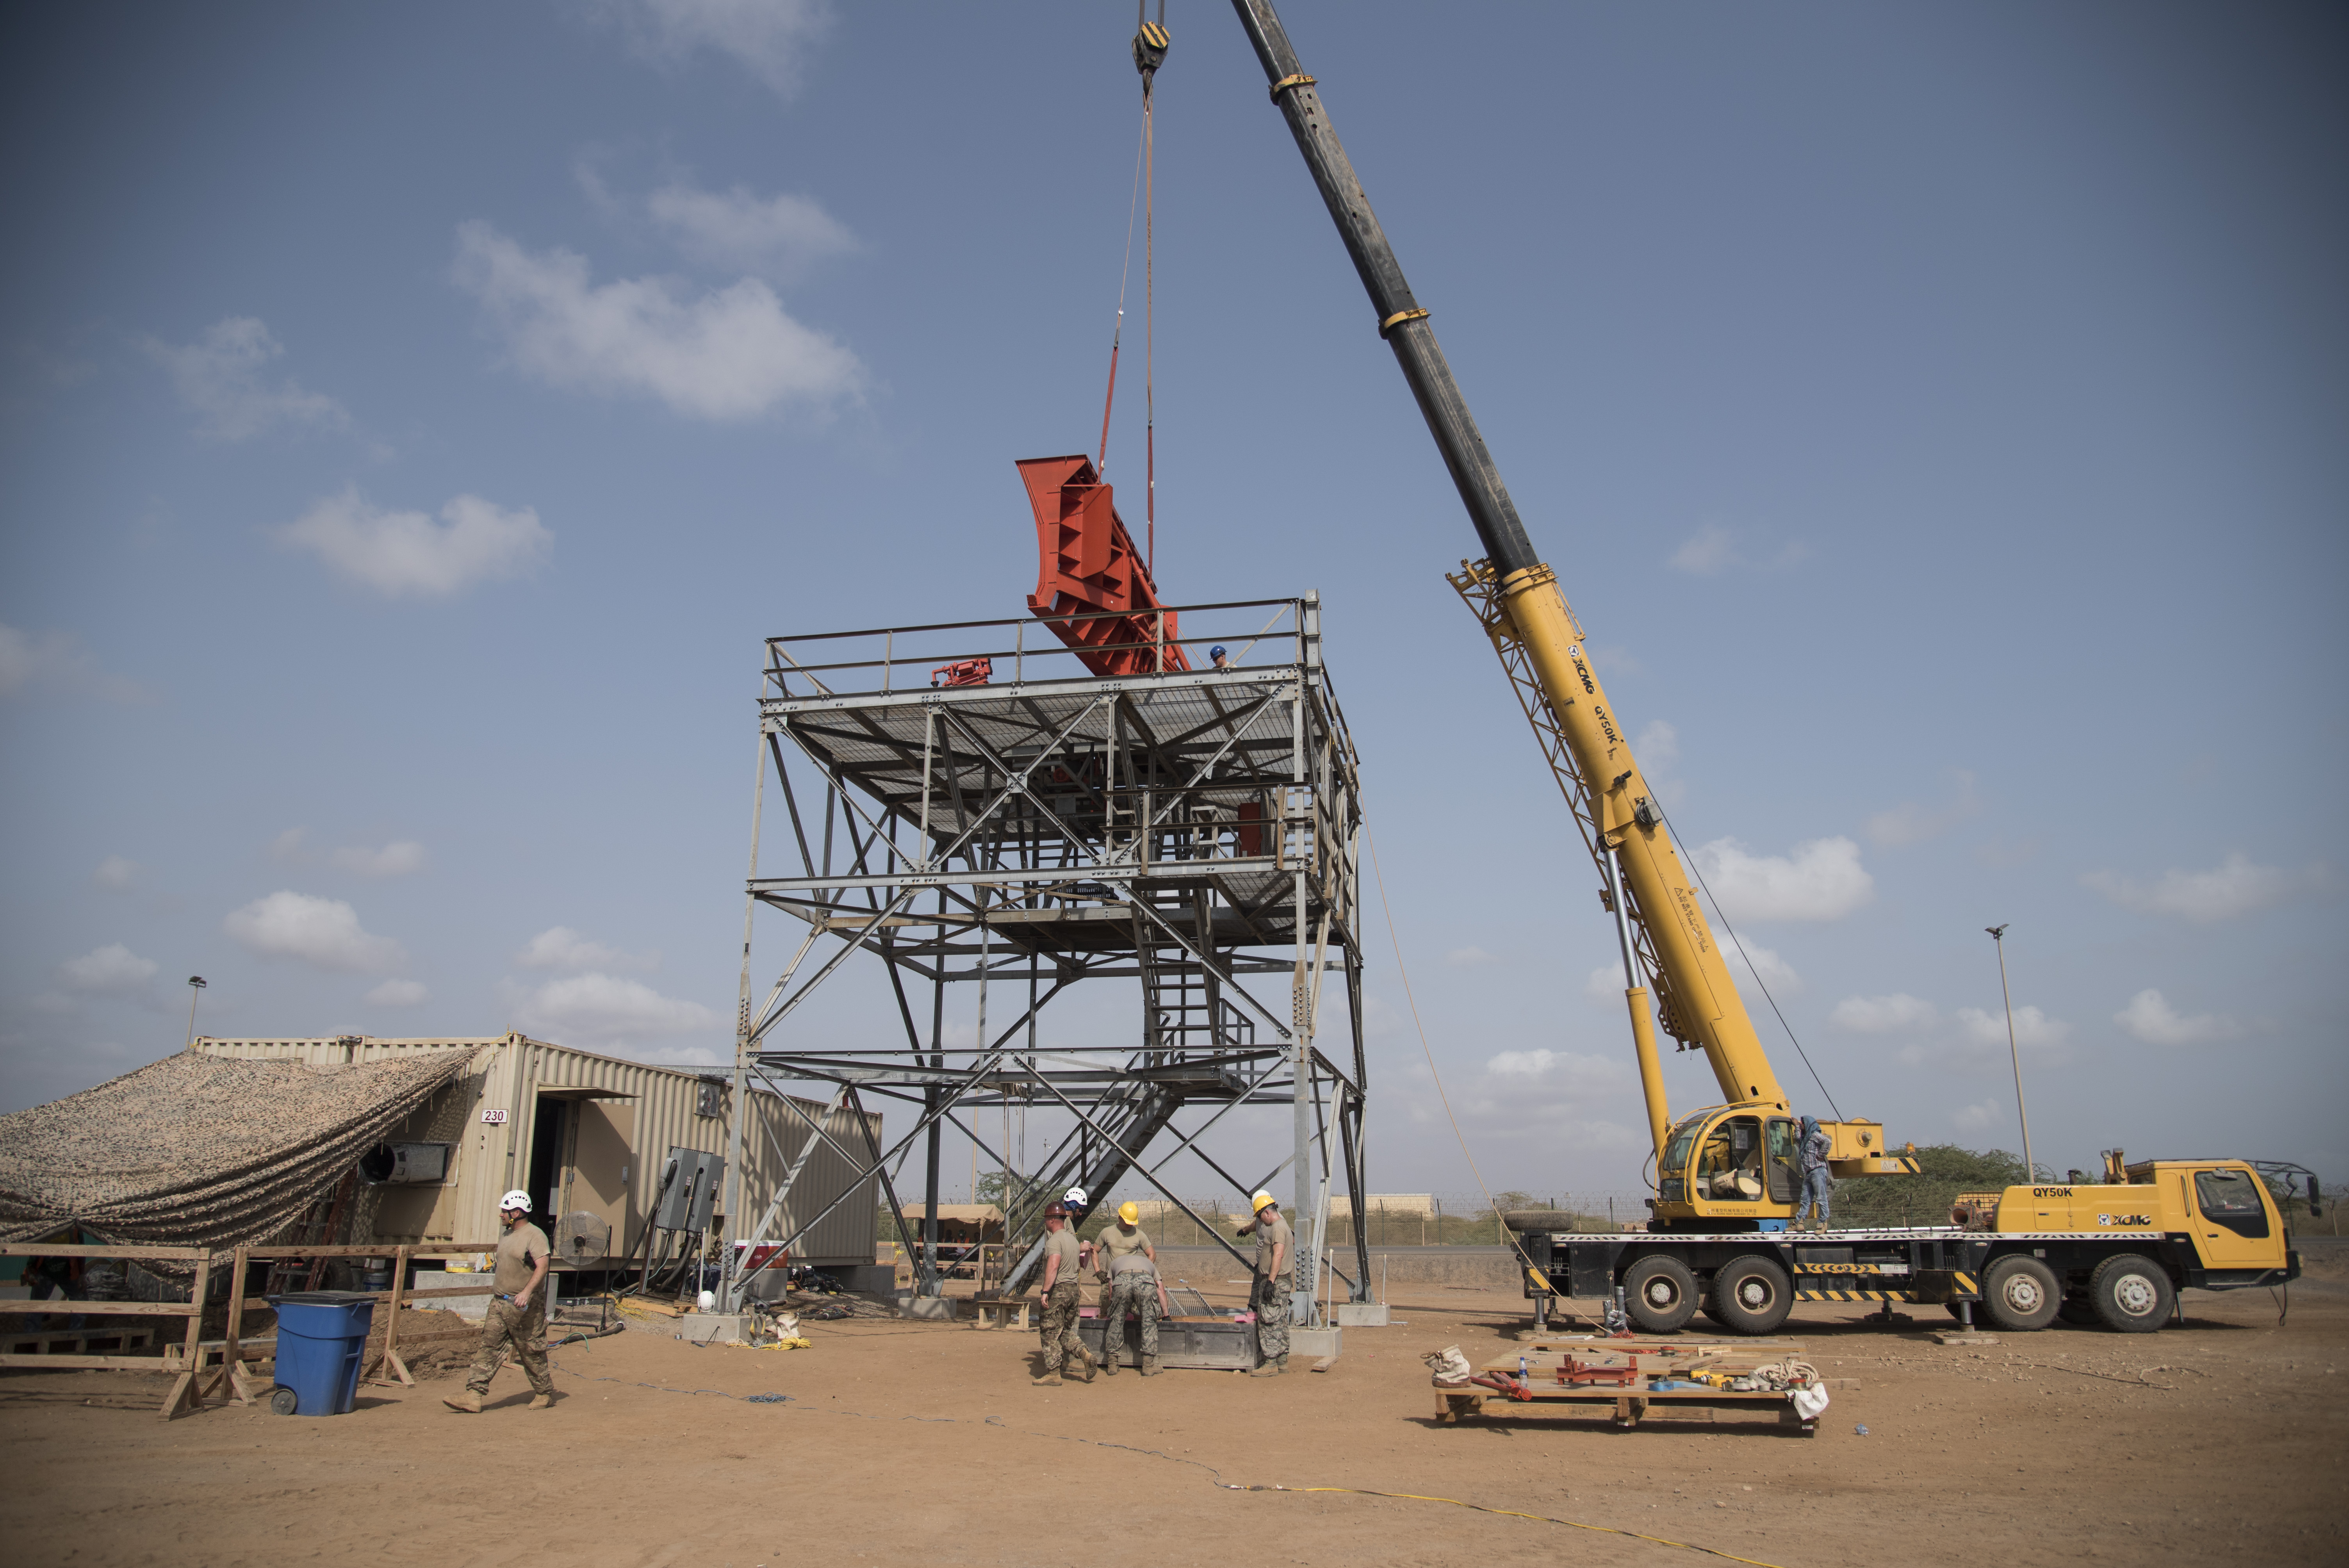 CAMP LEMONNIER, Djibouti- U.S. Air Force Airmen of the 205th Engineering Installation Squadron, out of Oklahoma City install a new AN/GPN-27 Airport Surveillance Radar System tower, June 4, 2016, at Camp Lemonnier, Djibouti. With coordination between the 205th EIS, U.S. Air Forces in Europe, U.S. Air Force Flight Standards Agency, U.S. Air Forces Central Command and the U.S. Navy, the new radar will increase air traffic control capabilities and safety. (U.S. Air Force photo by Staff Sgt. Tiffany DeNault)